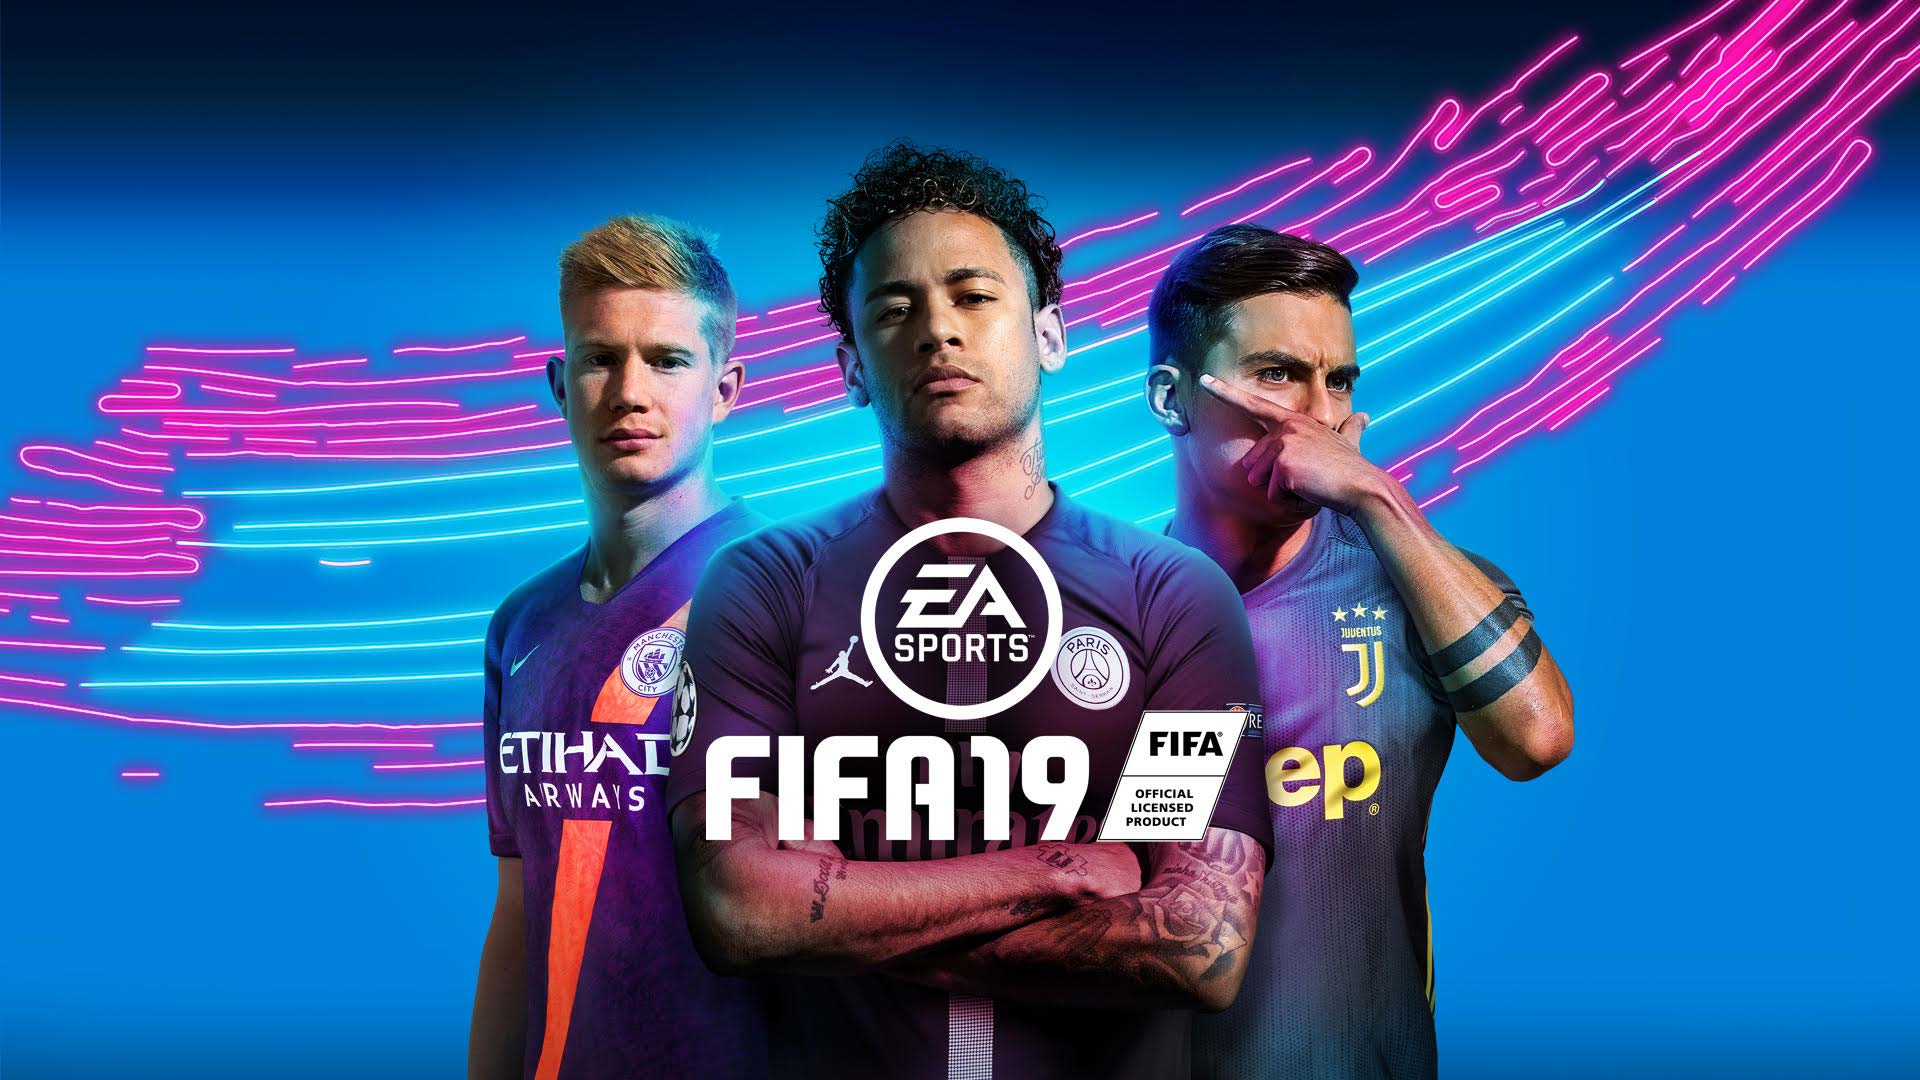 Fifa 19 updated cover